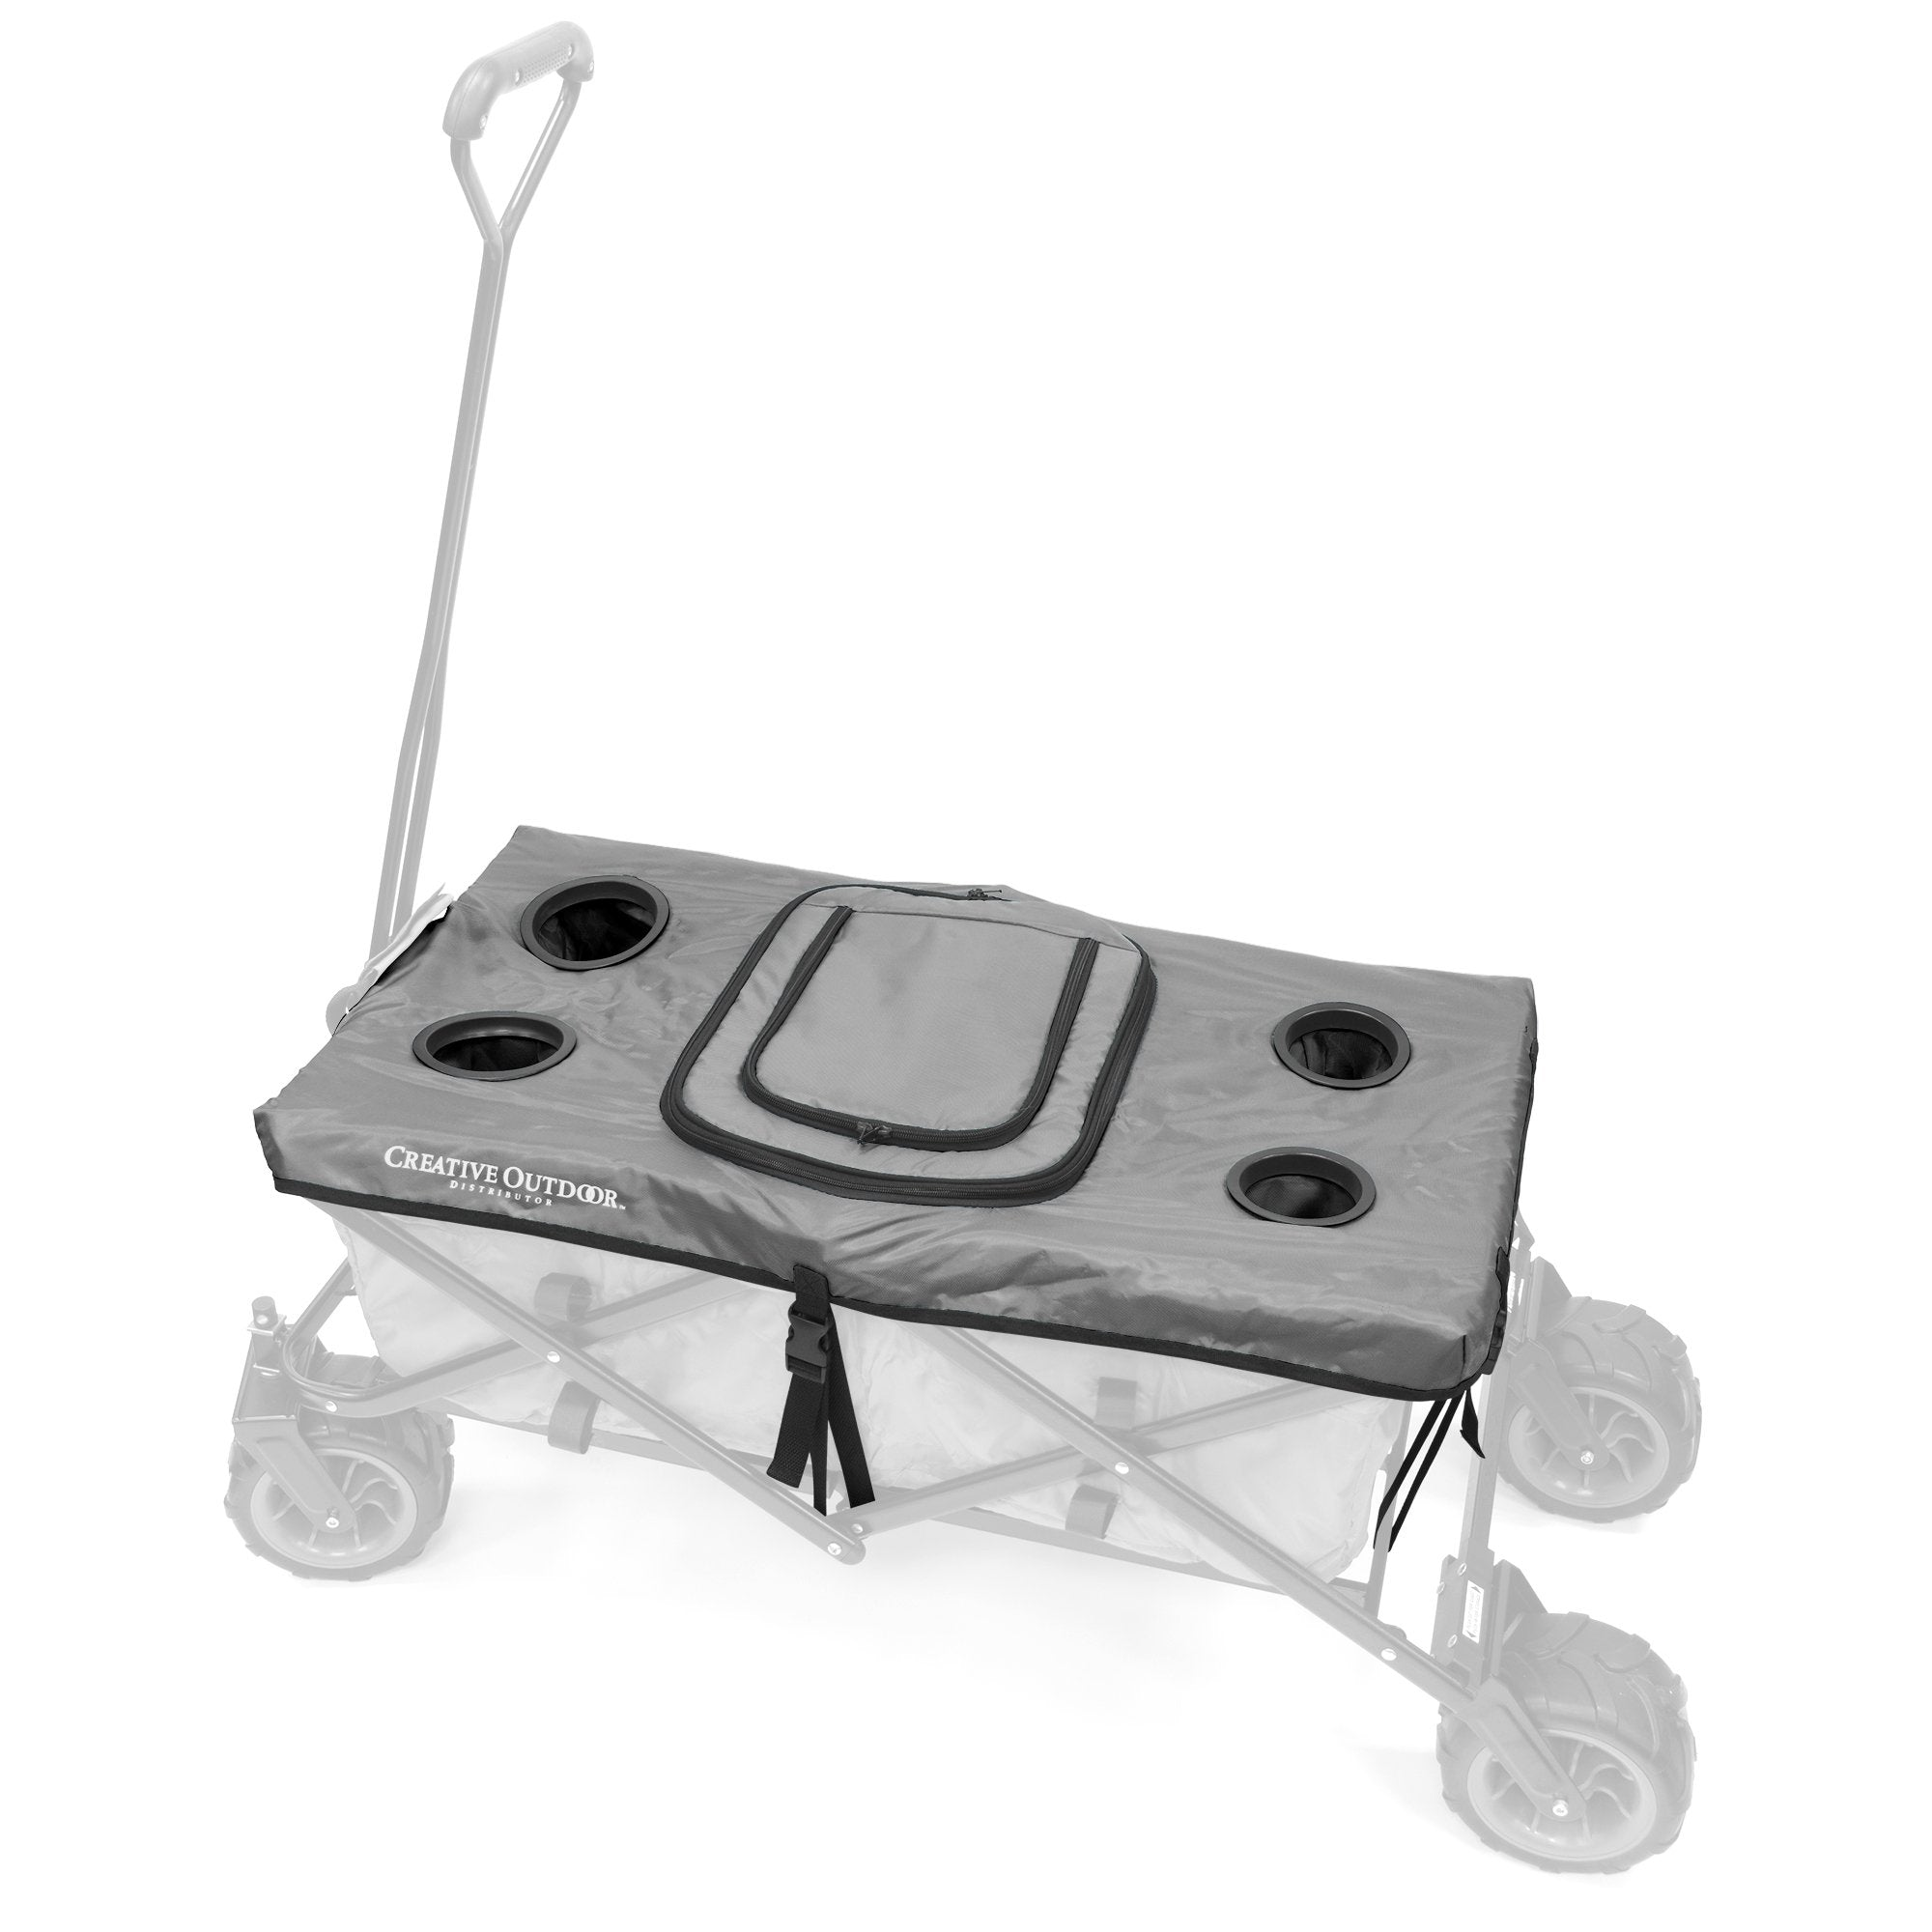 All-Terrain Folding Wagon Tabletop Cooler Accessory | Gray